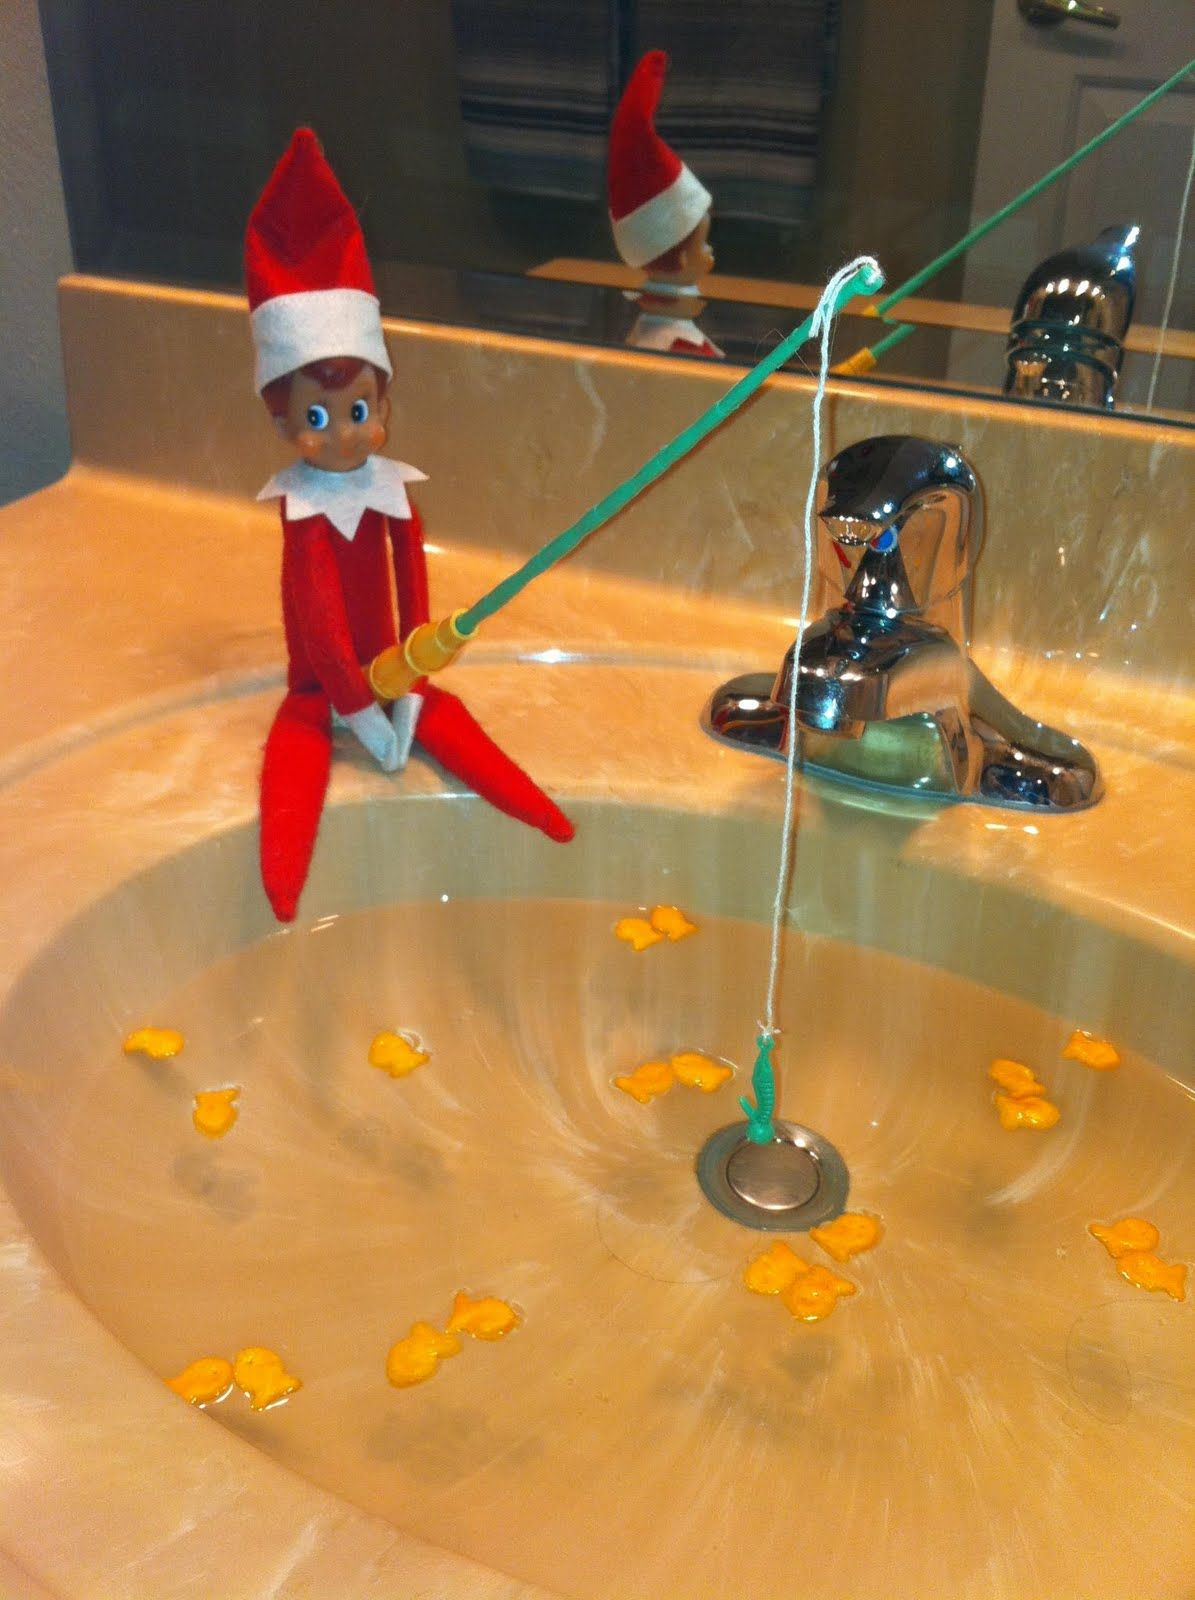 yep jingles our elf will definitely be fishing in the